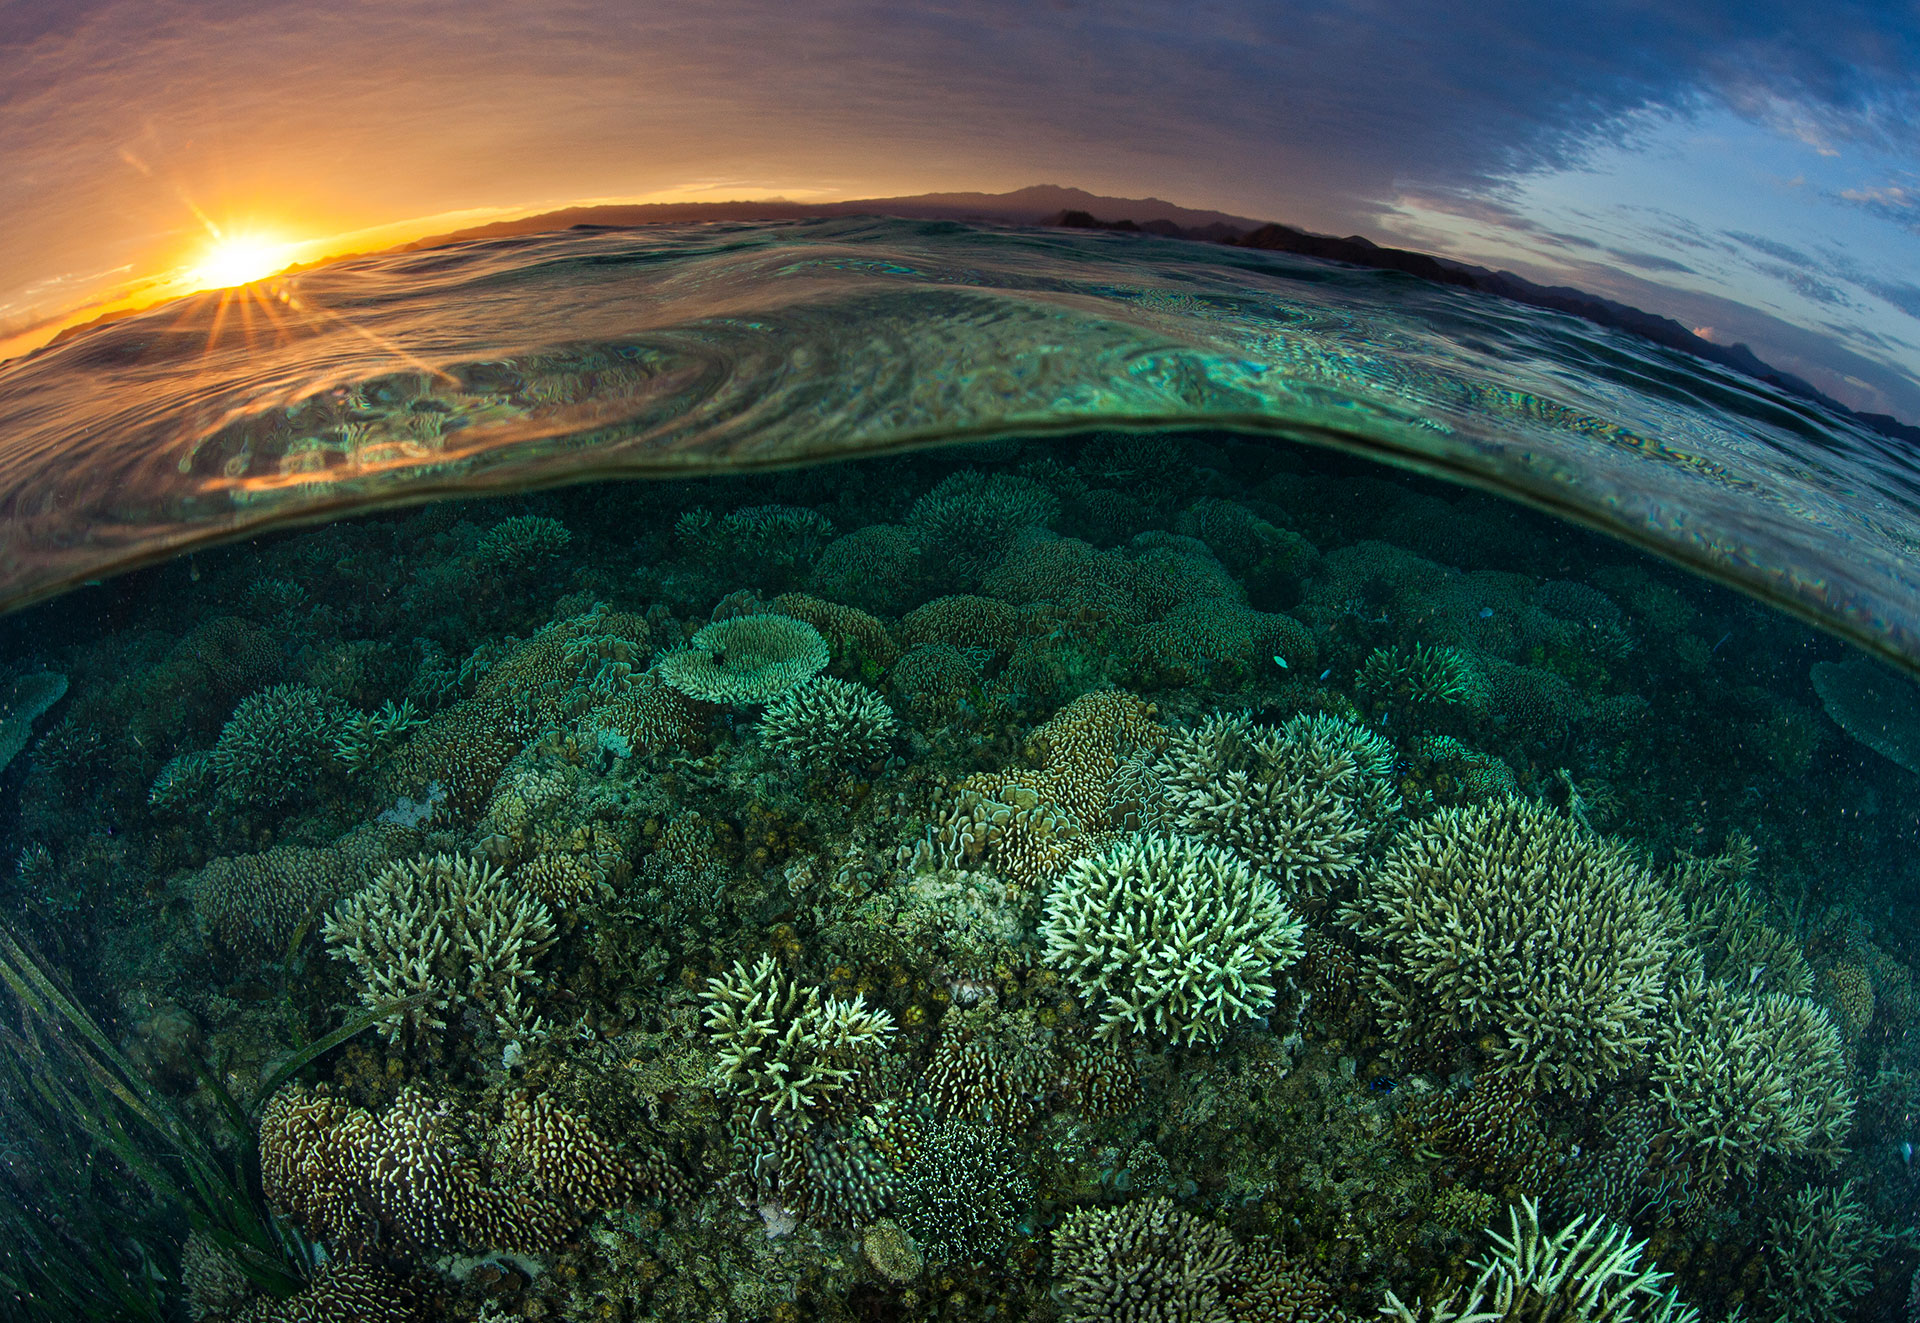 Sunrise Over Reef in Komodo National Park © Paul Hilton / Greenpeace